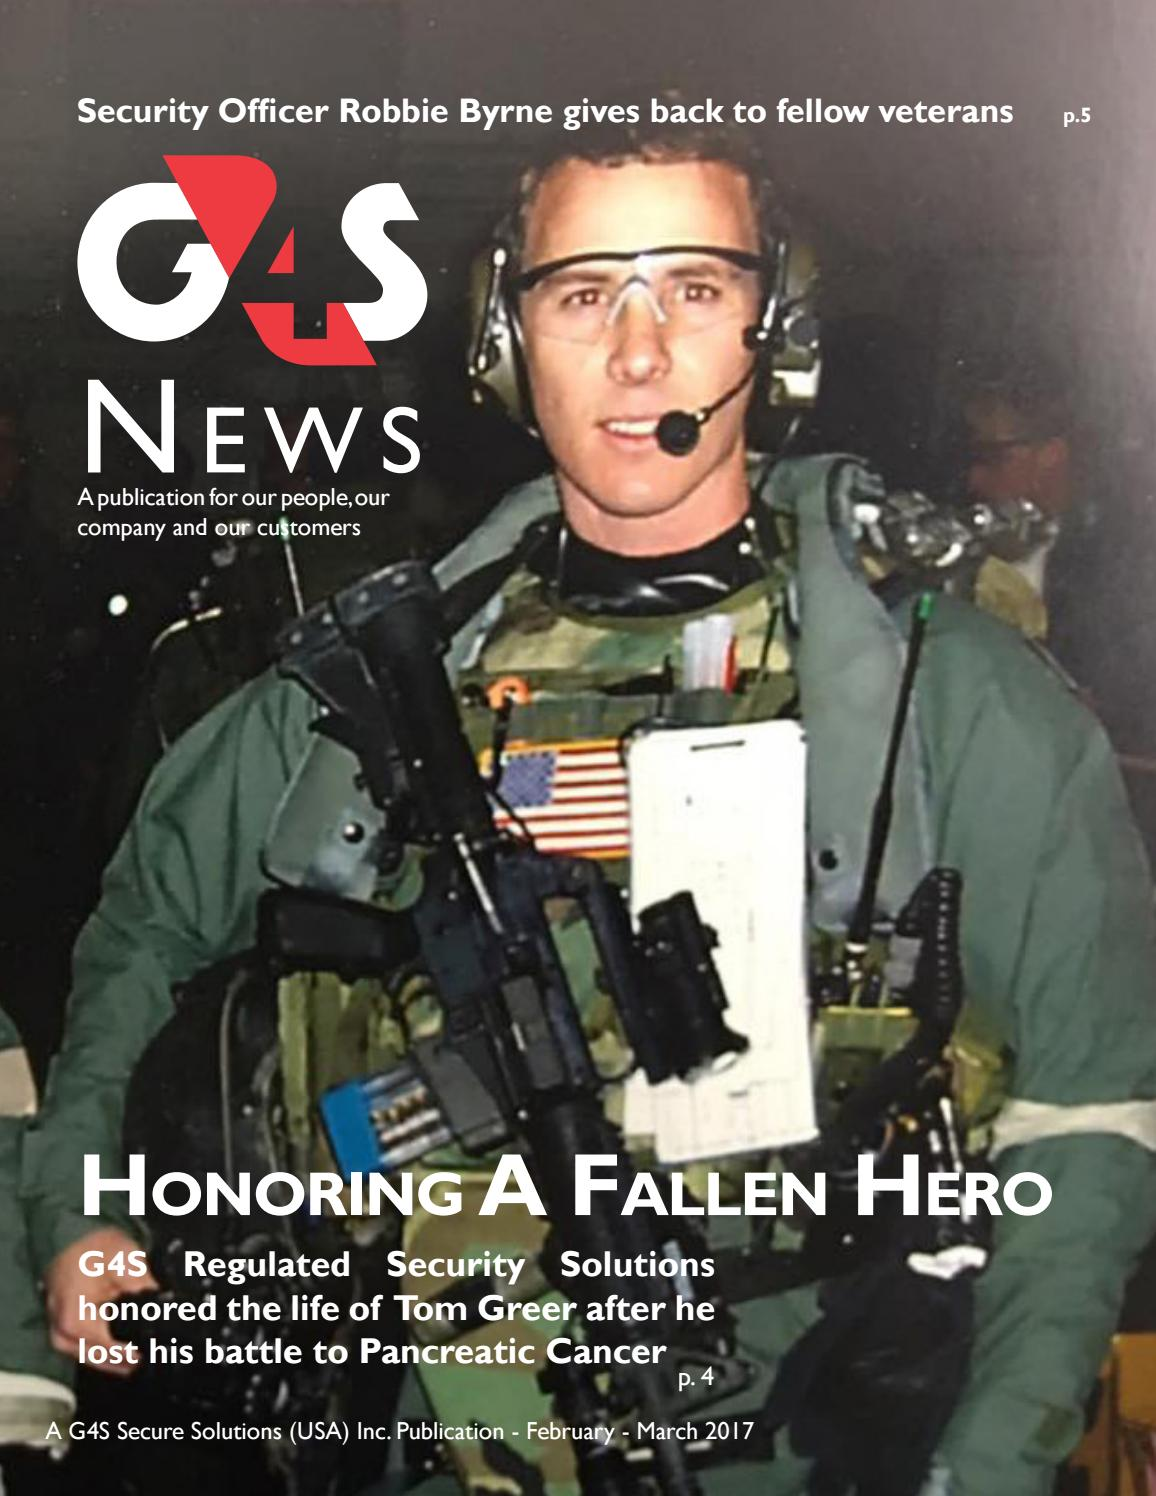 G4s news january march 2017 by g4s news issuu - How to become security officer ...